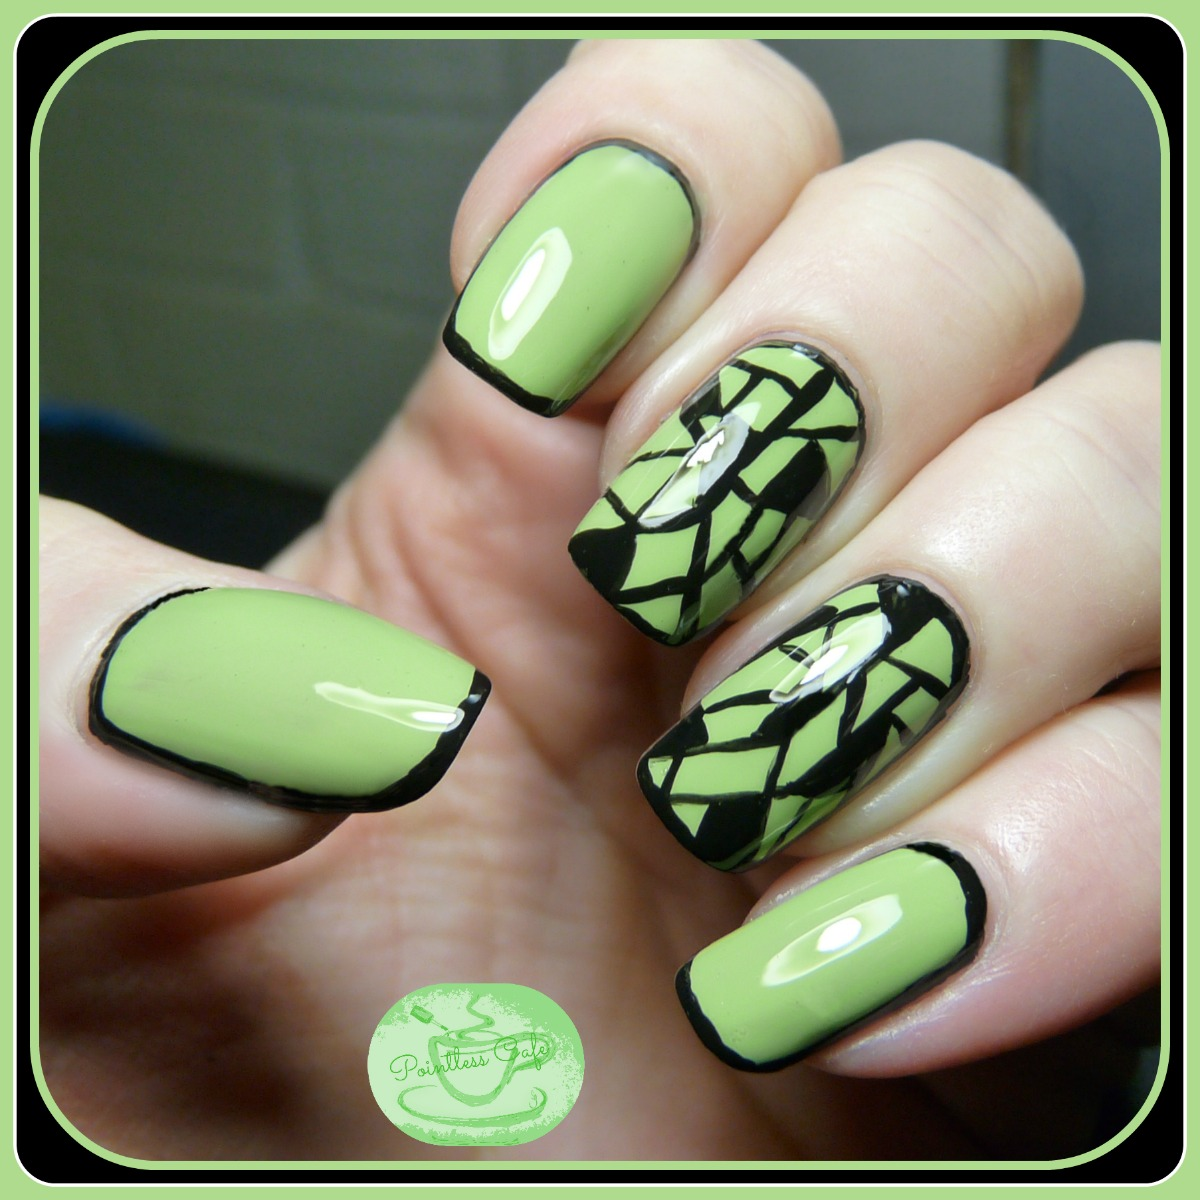 13 Days of January Nail Art Challenge: Green Base - Framed Mosaic ...